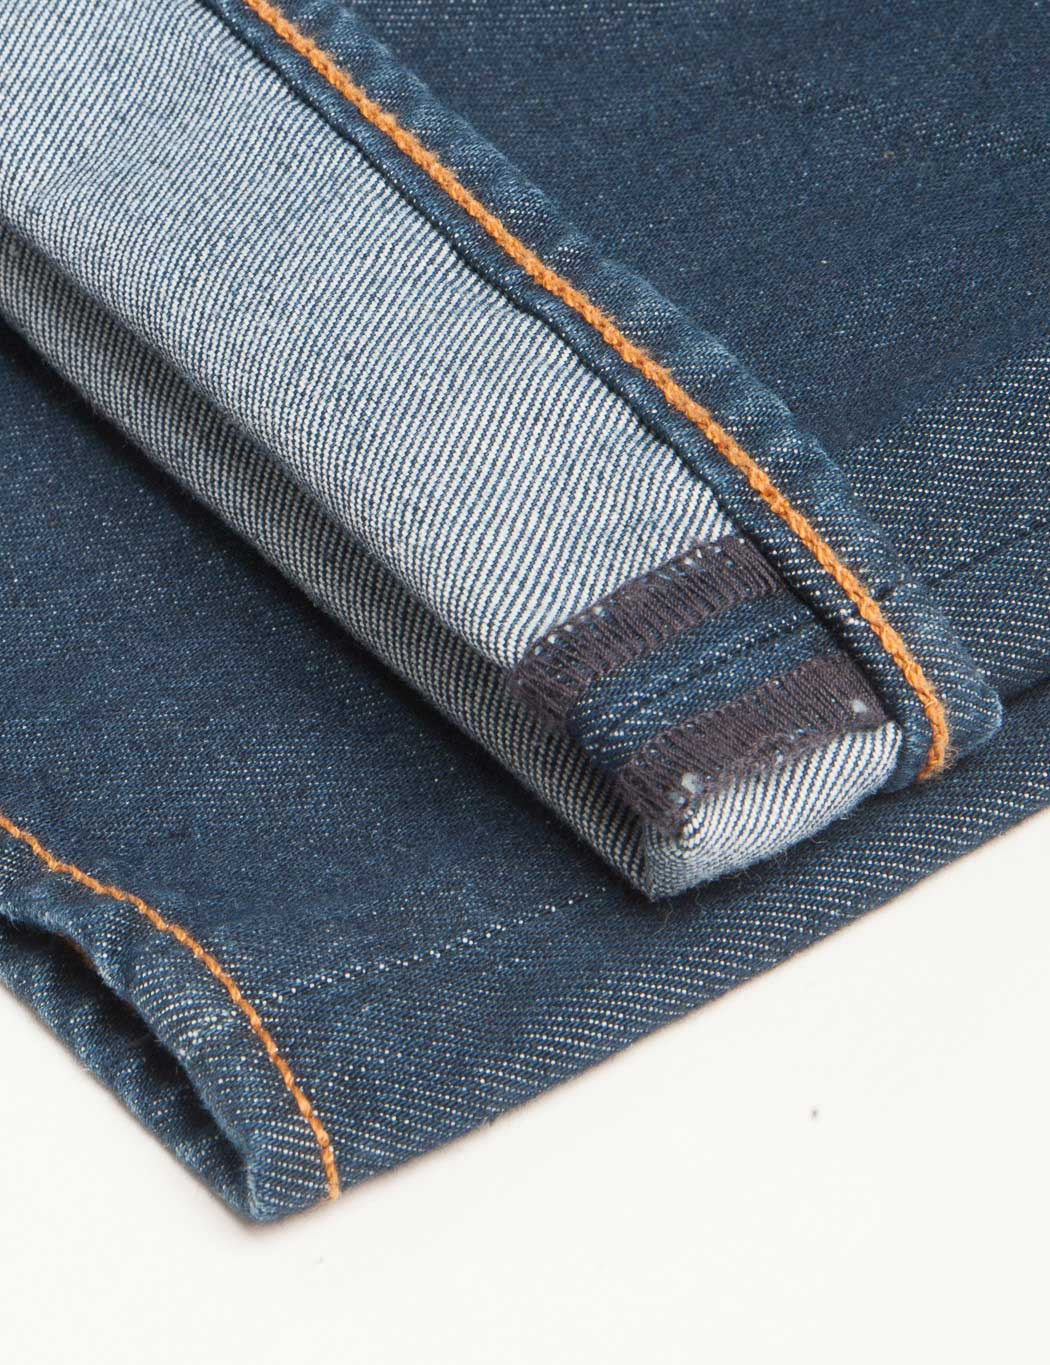 Levis 501 Original Fit Jeans - Scuffed